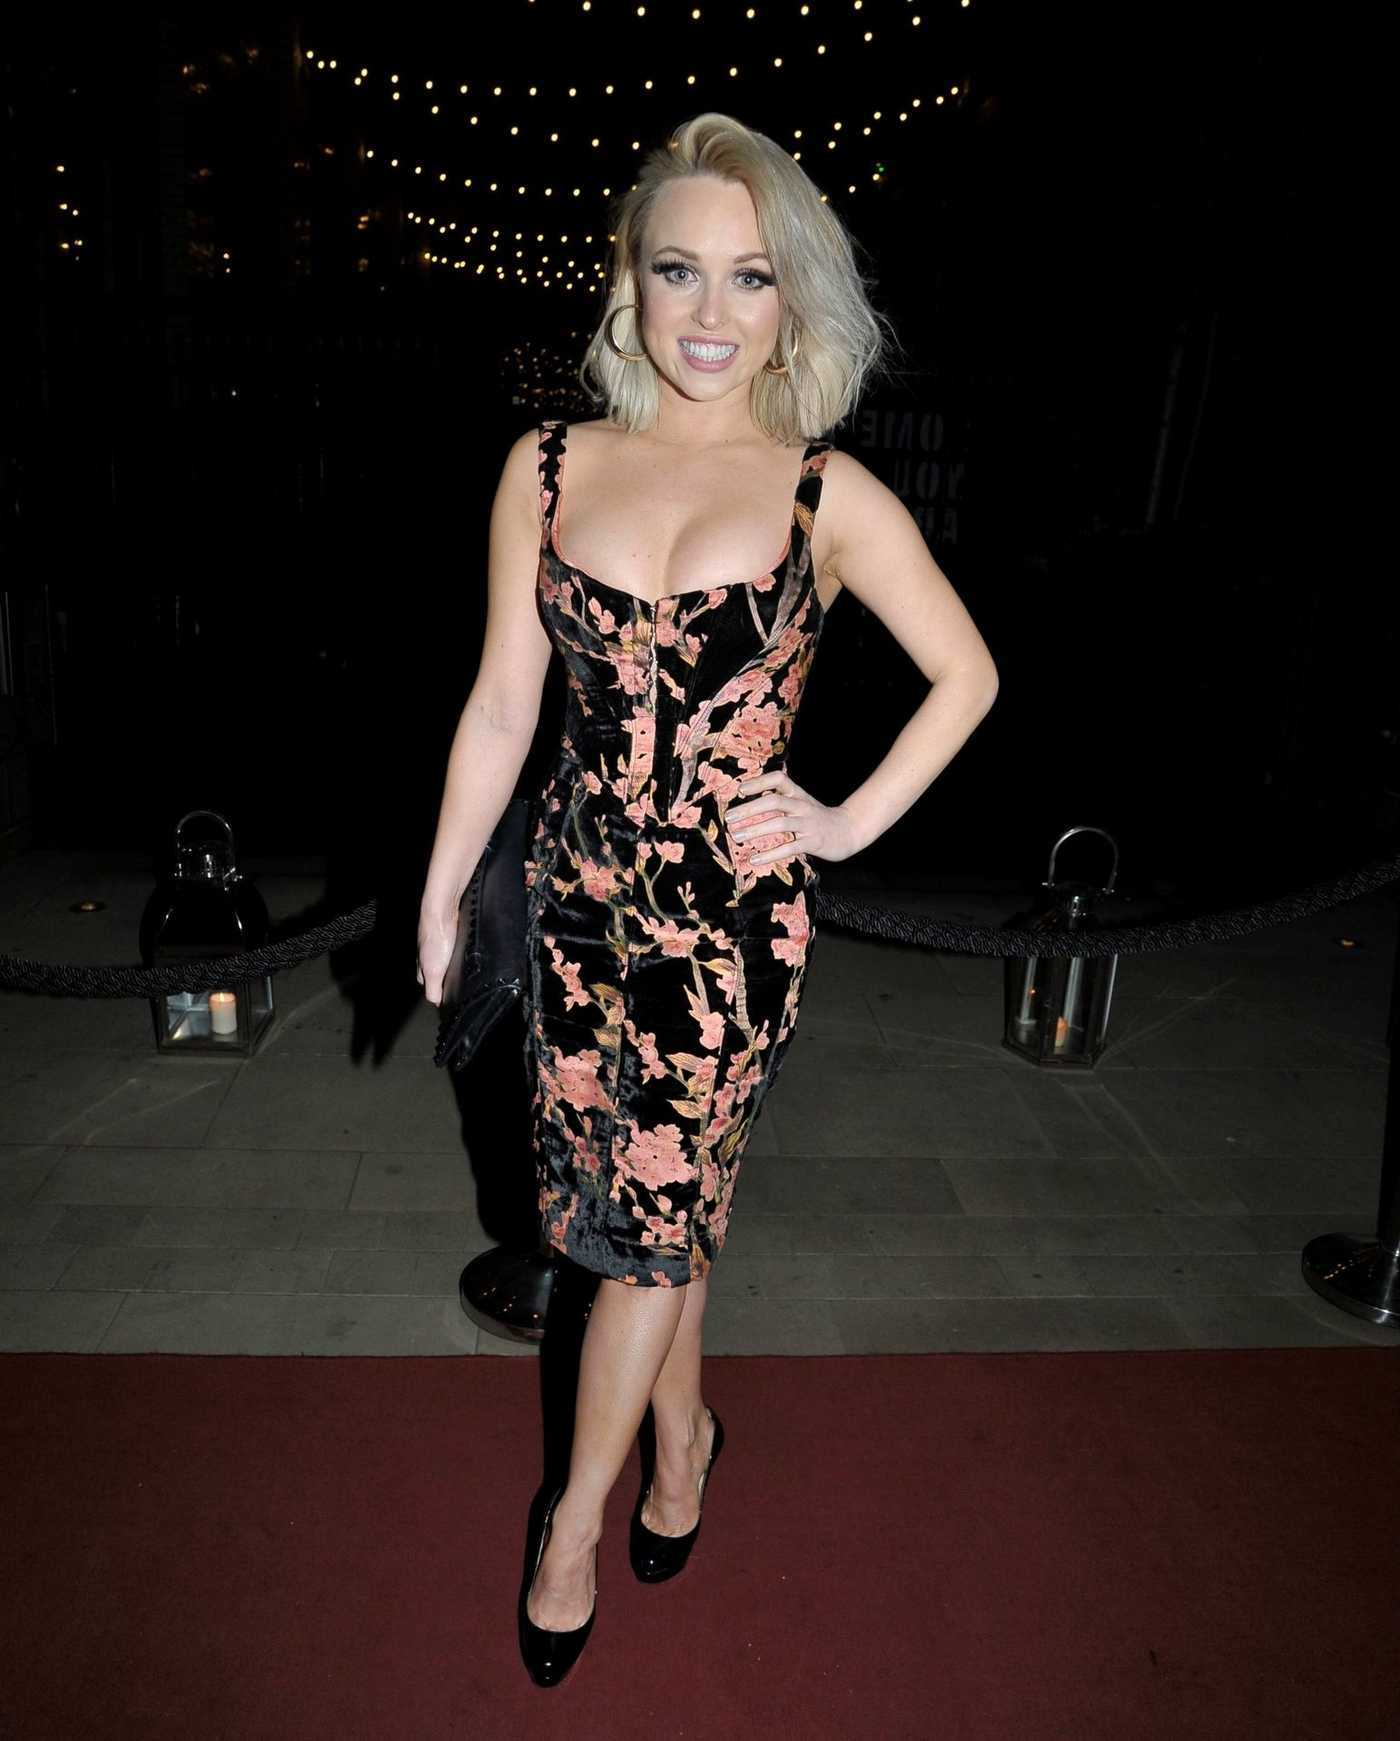 Jorgie Porter Arrives at the Christie Charity Ball at Principal Hotel in Manchester 03/09/2019